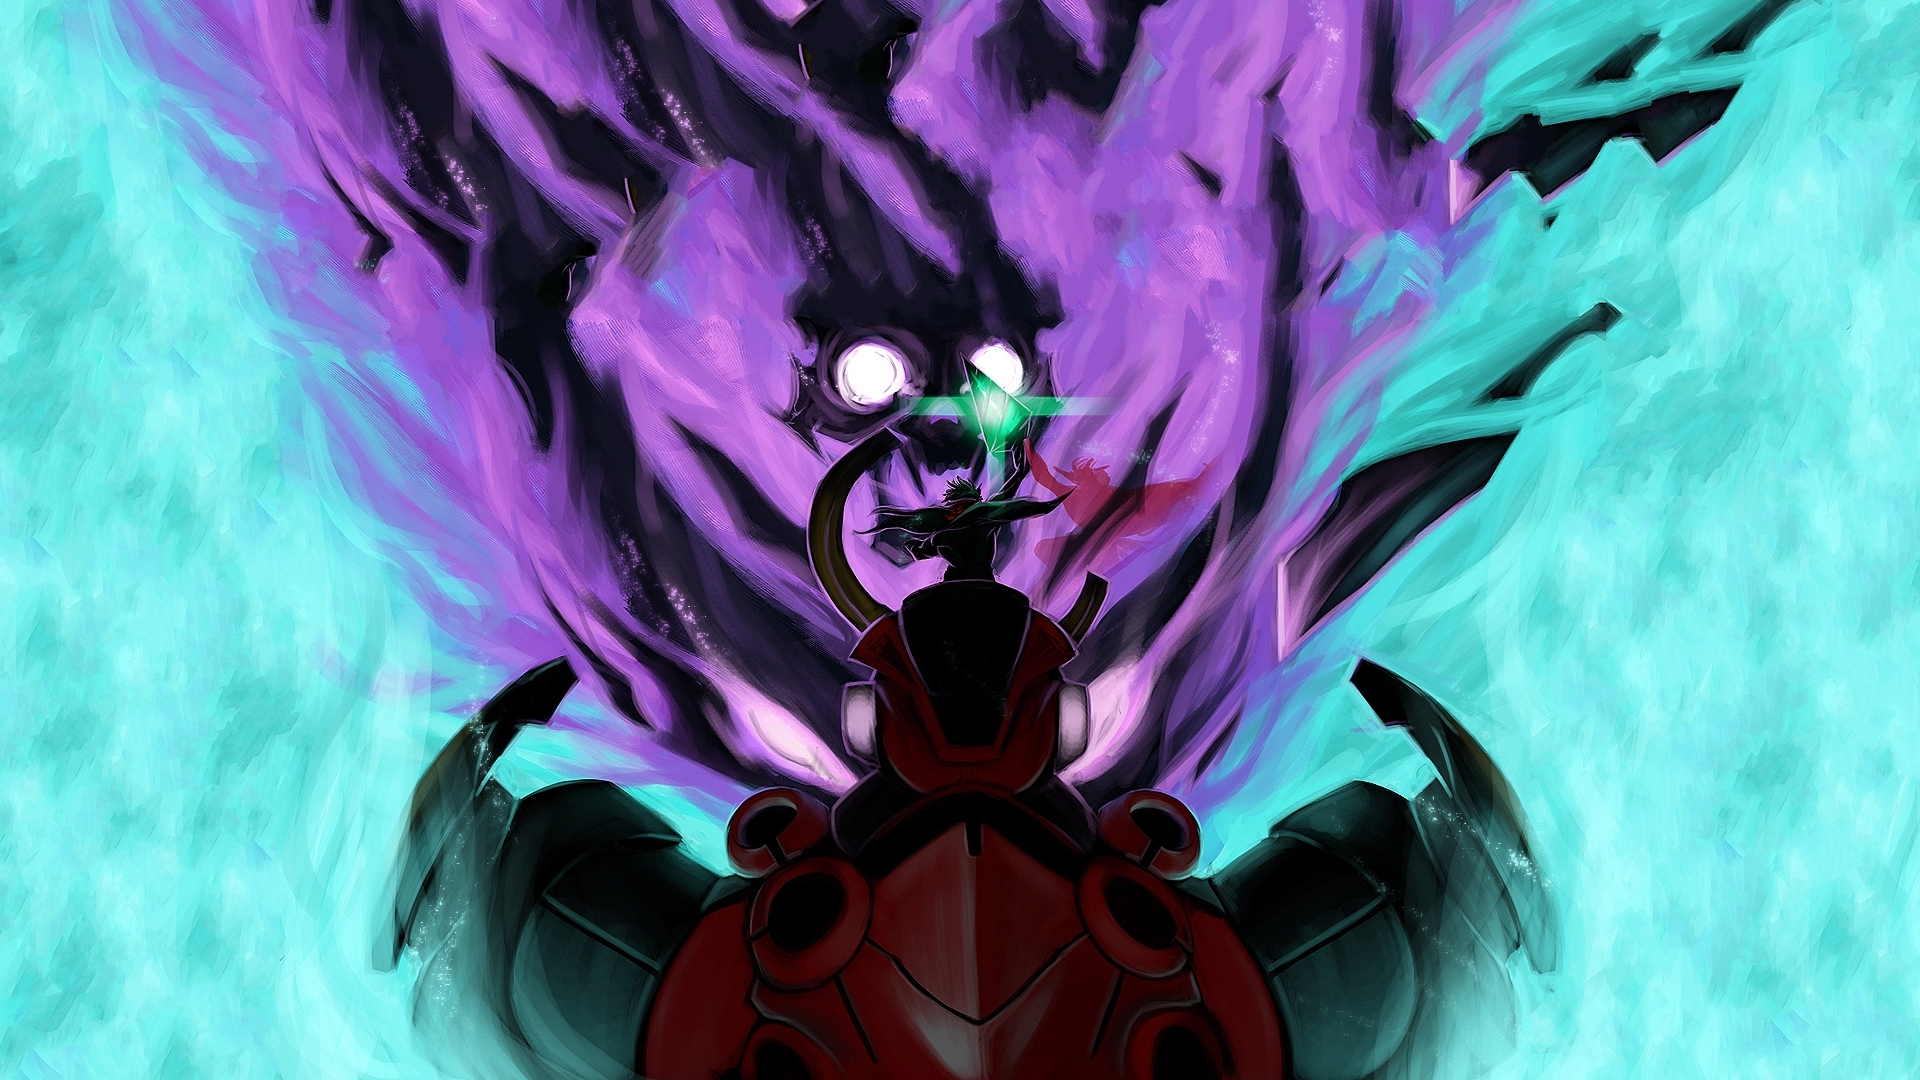 Gurren lagann wallpaper 1080p wallpapersafari - Gurren lagann wallpaper ...